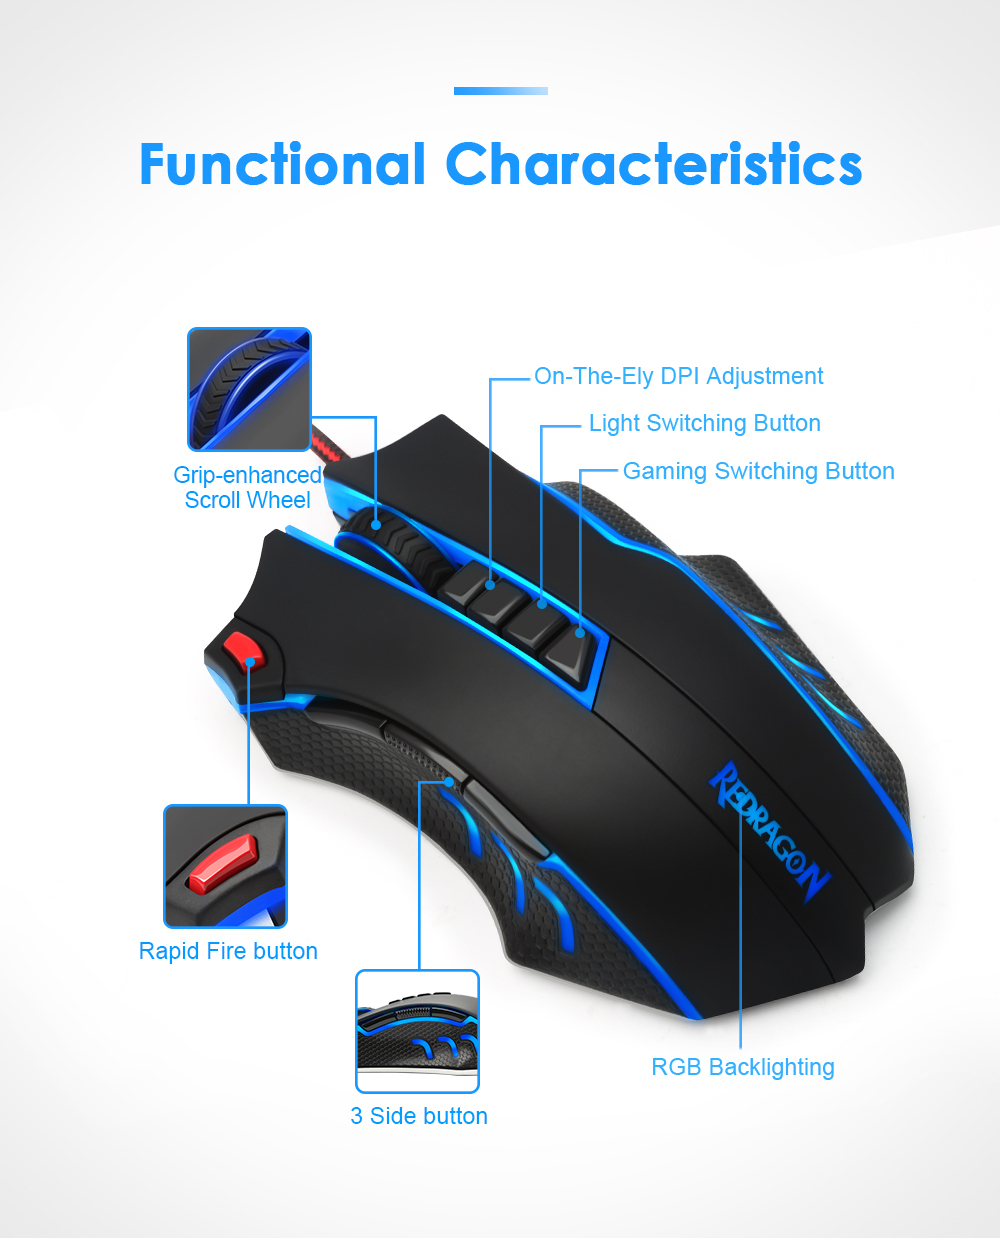 Redragon USB wired RGB Gaming Mouse 24000DPI 10 buttons laser programmable game mice LED backlight ergonomic for laptop computer 10